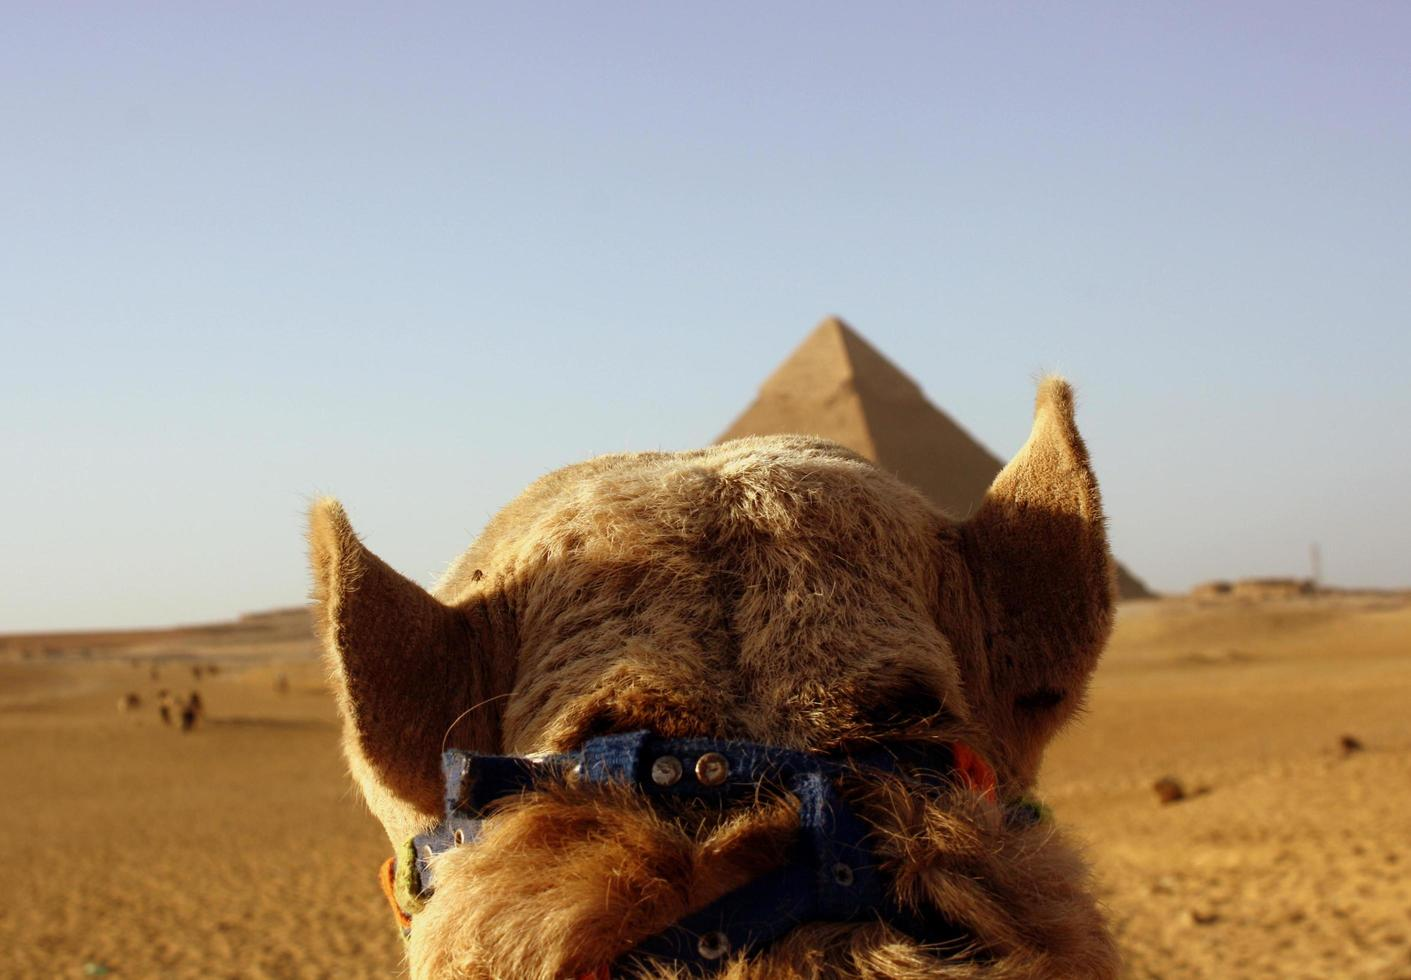 View of camel head in Egypt. photo